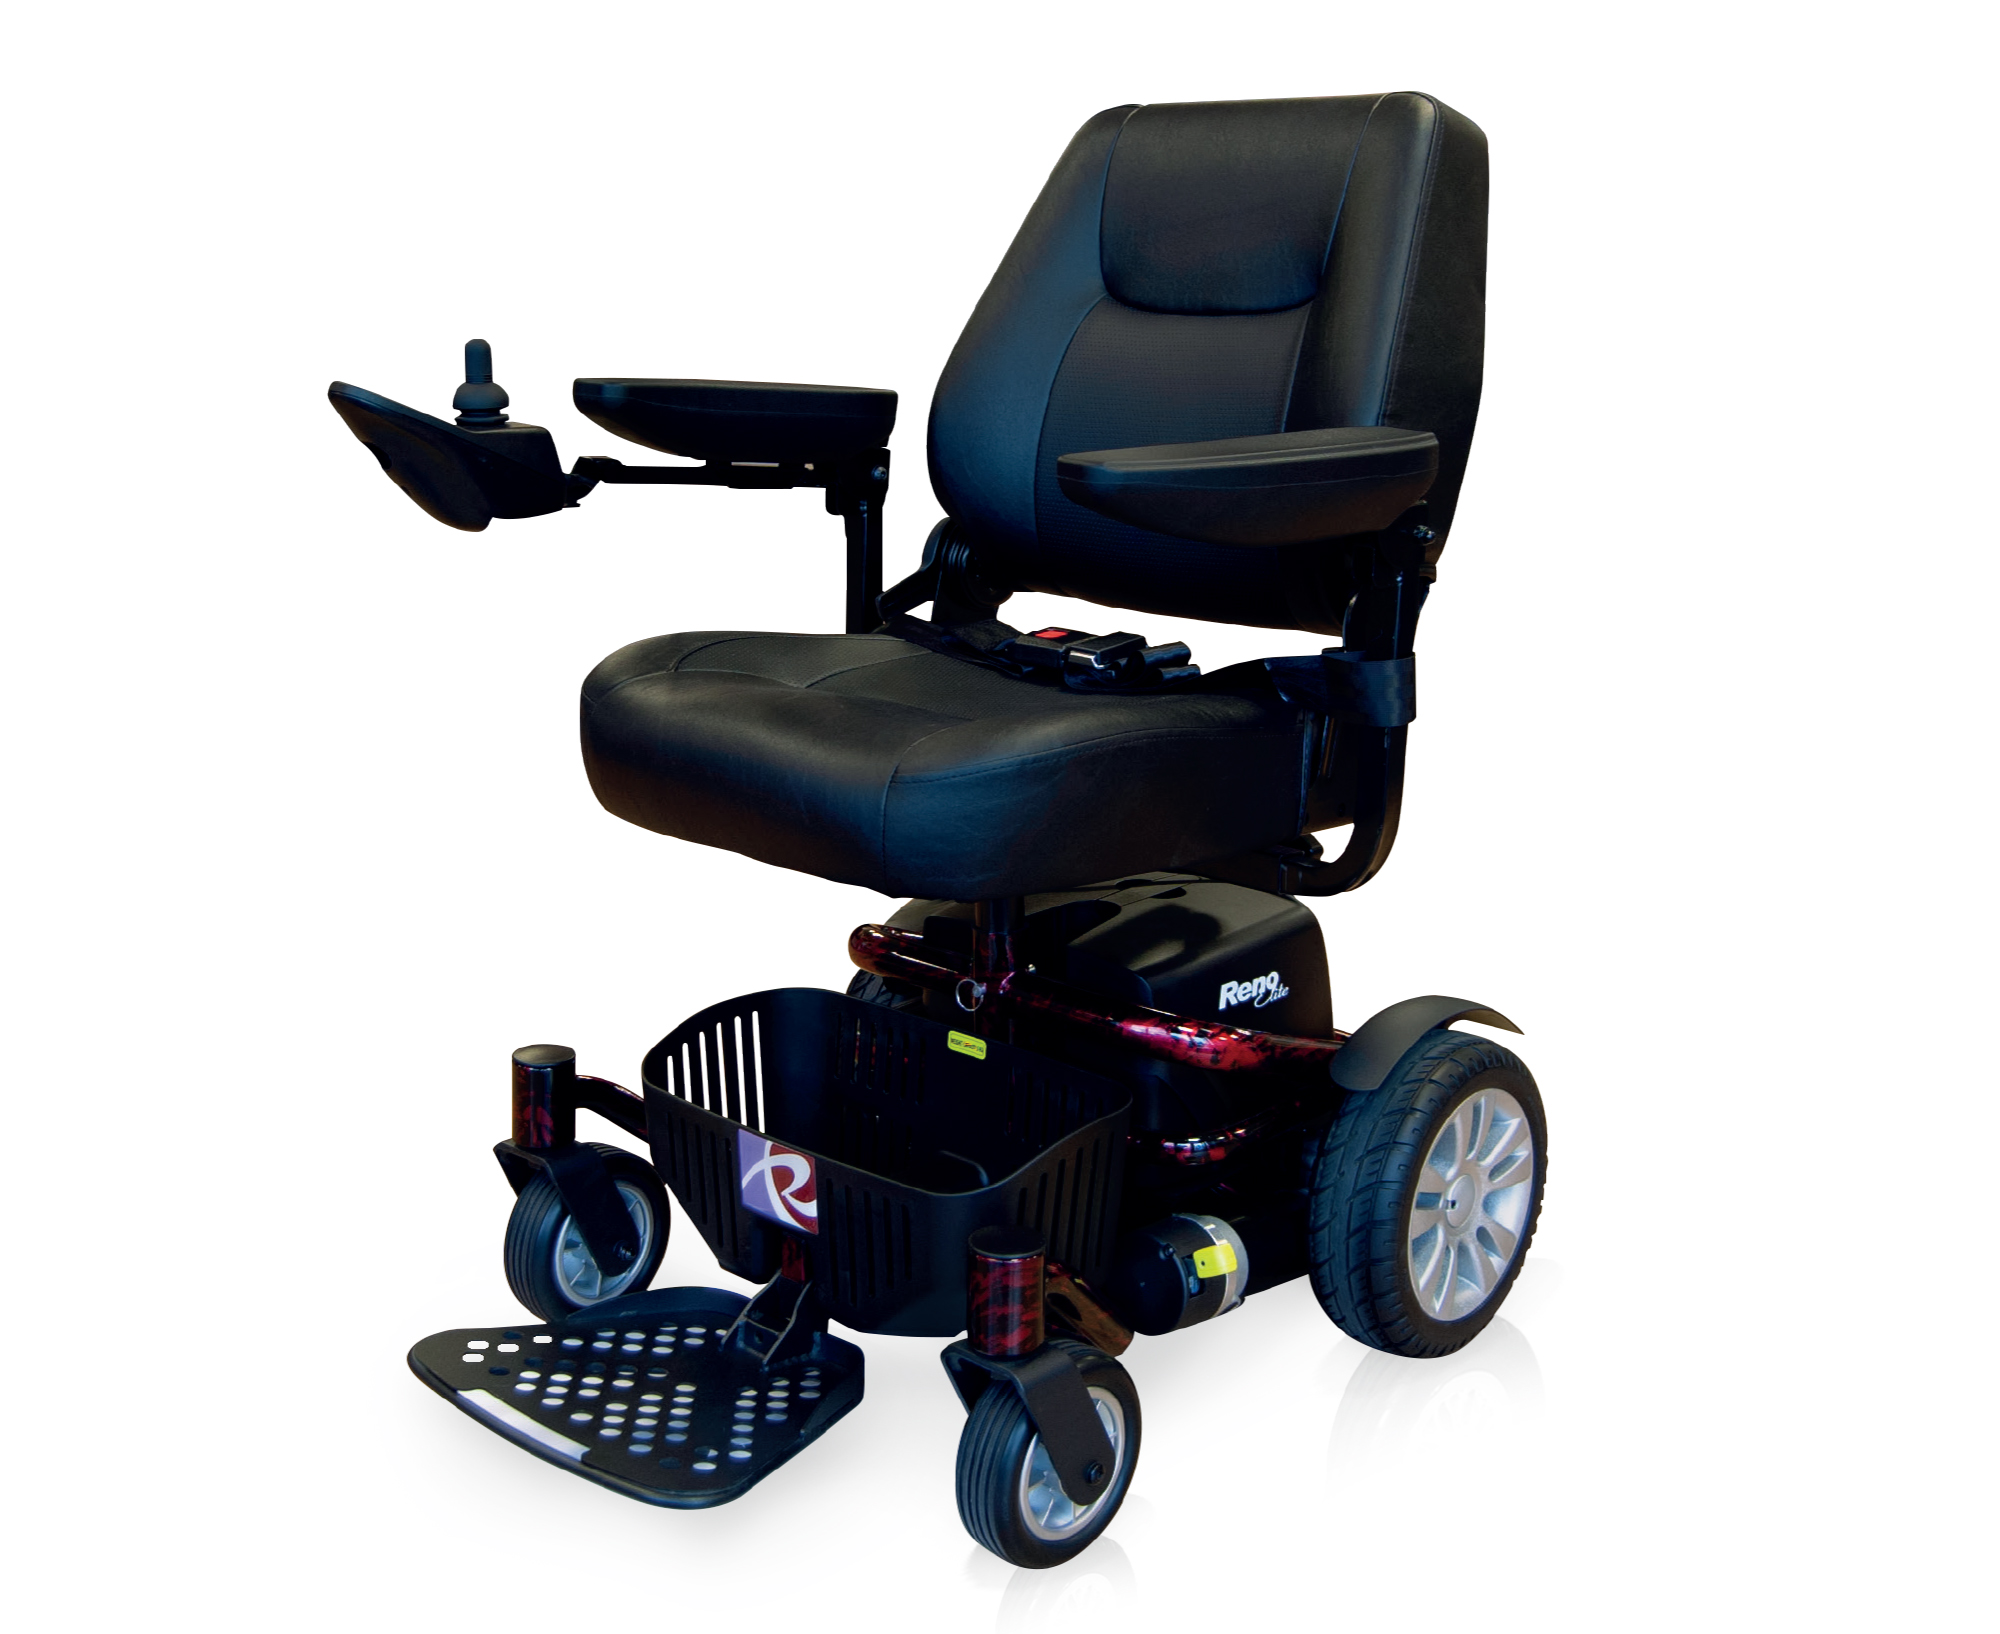 british mobility chairs grey chair slipcover wheelchairs power scooters walkers rollators roma reno elite captain seat